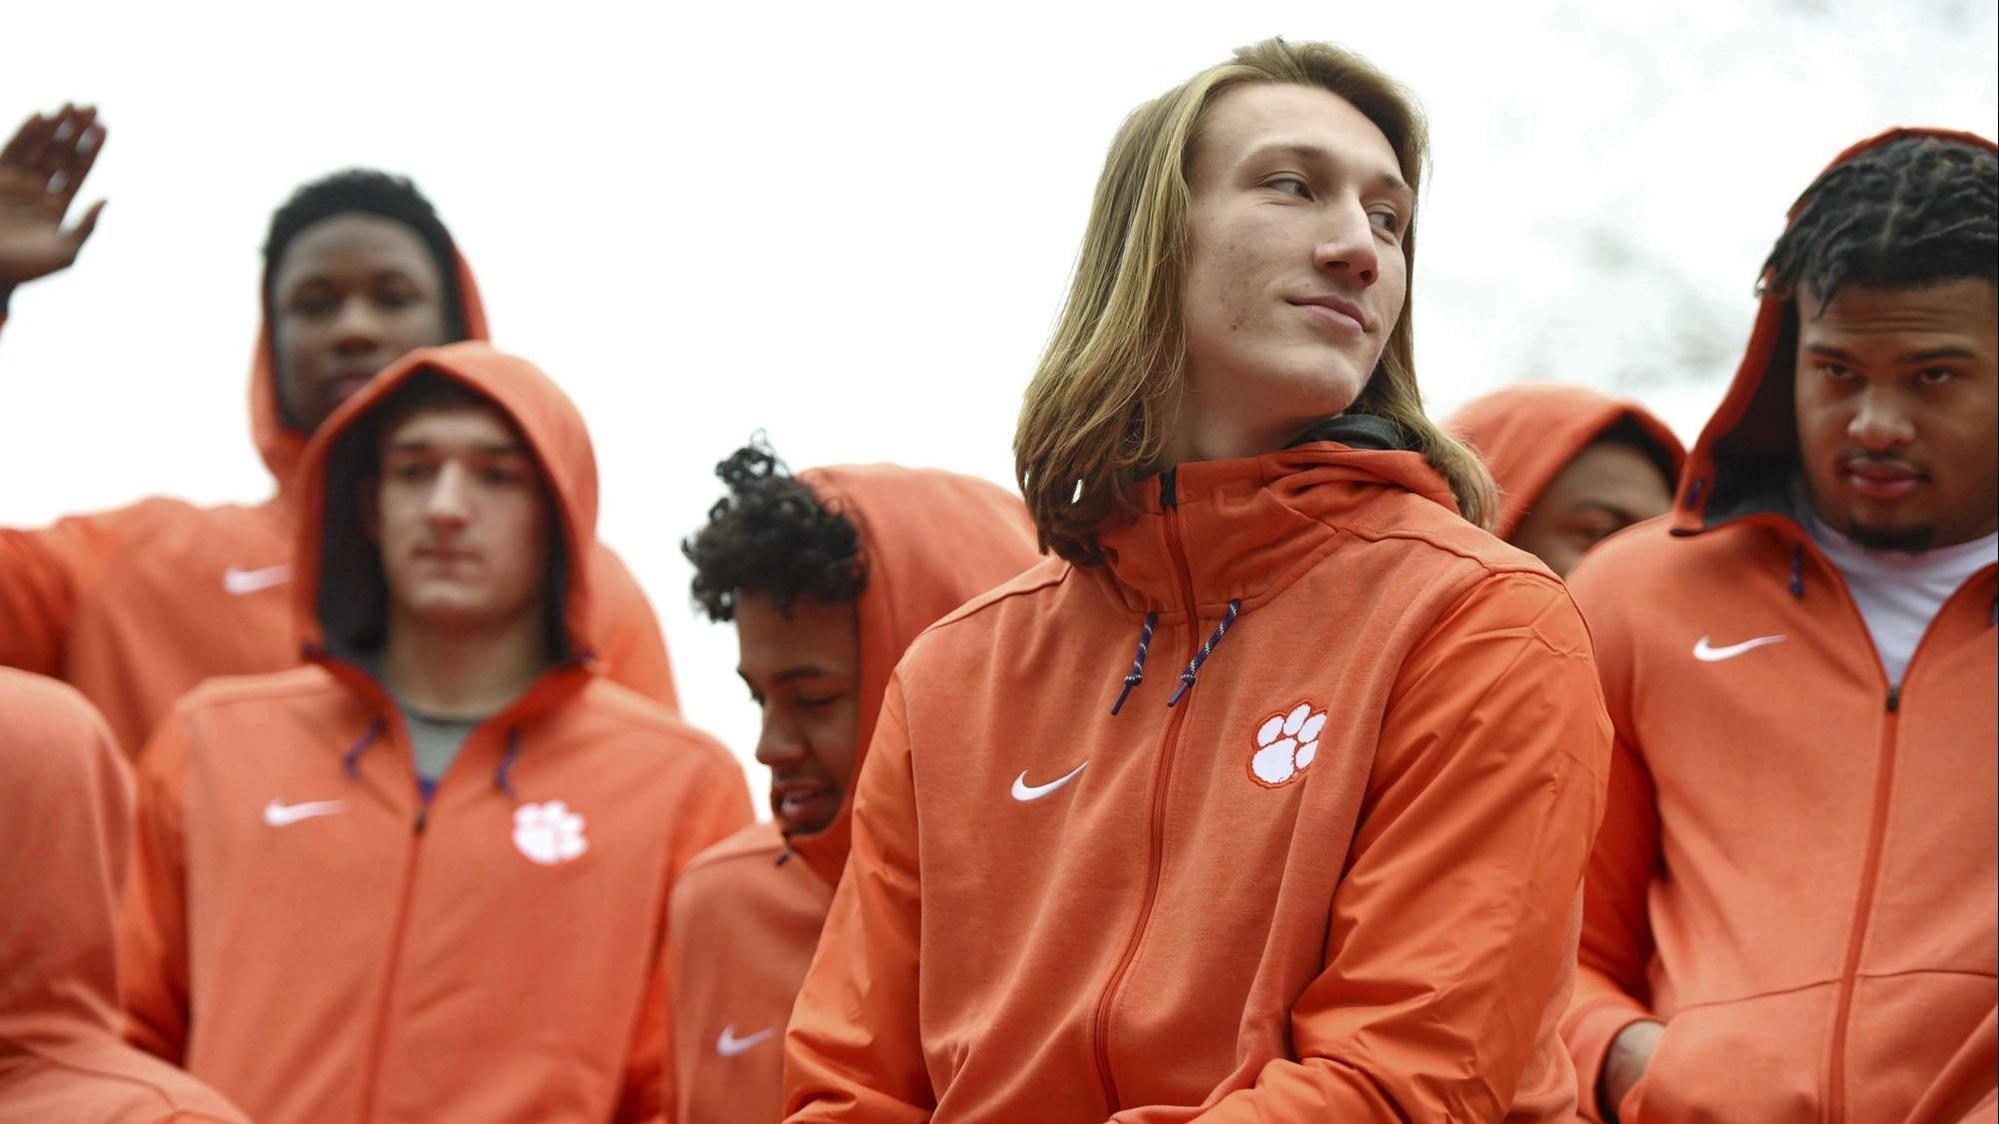 Clemson quarterback trevor lawrence says white house fast food meme is fake food news chicago tribune